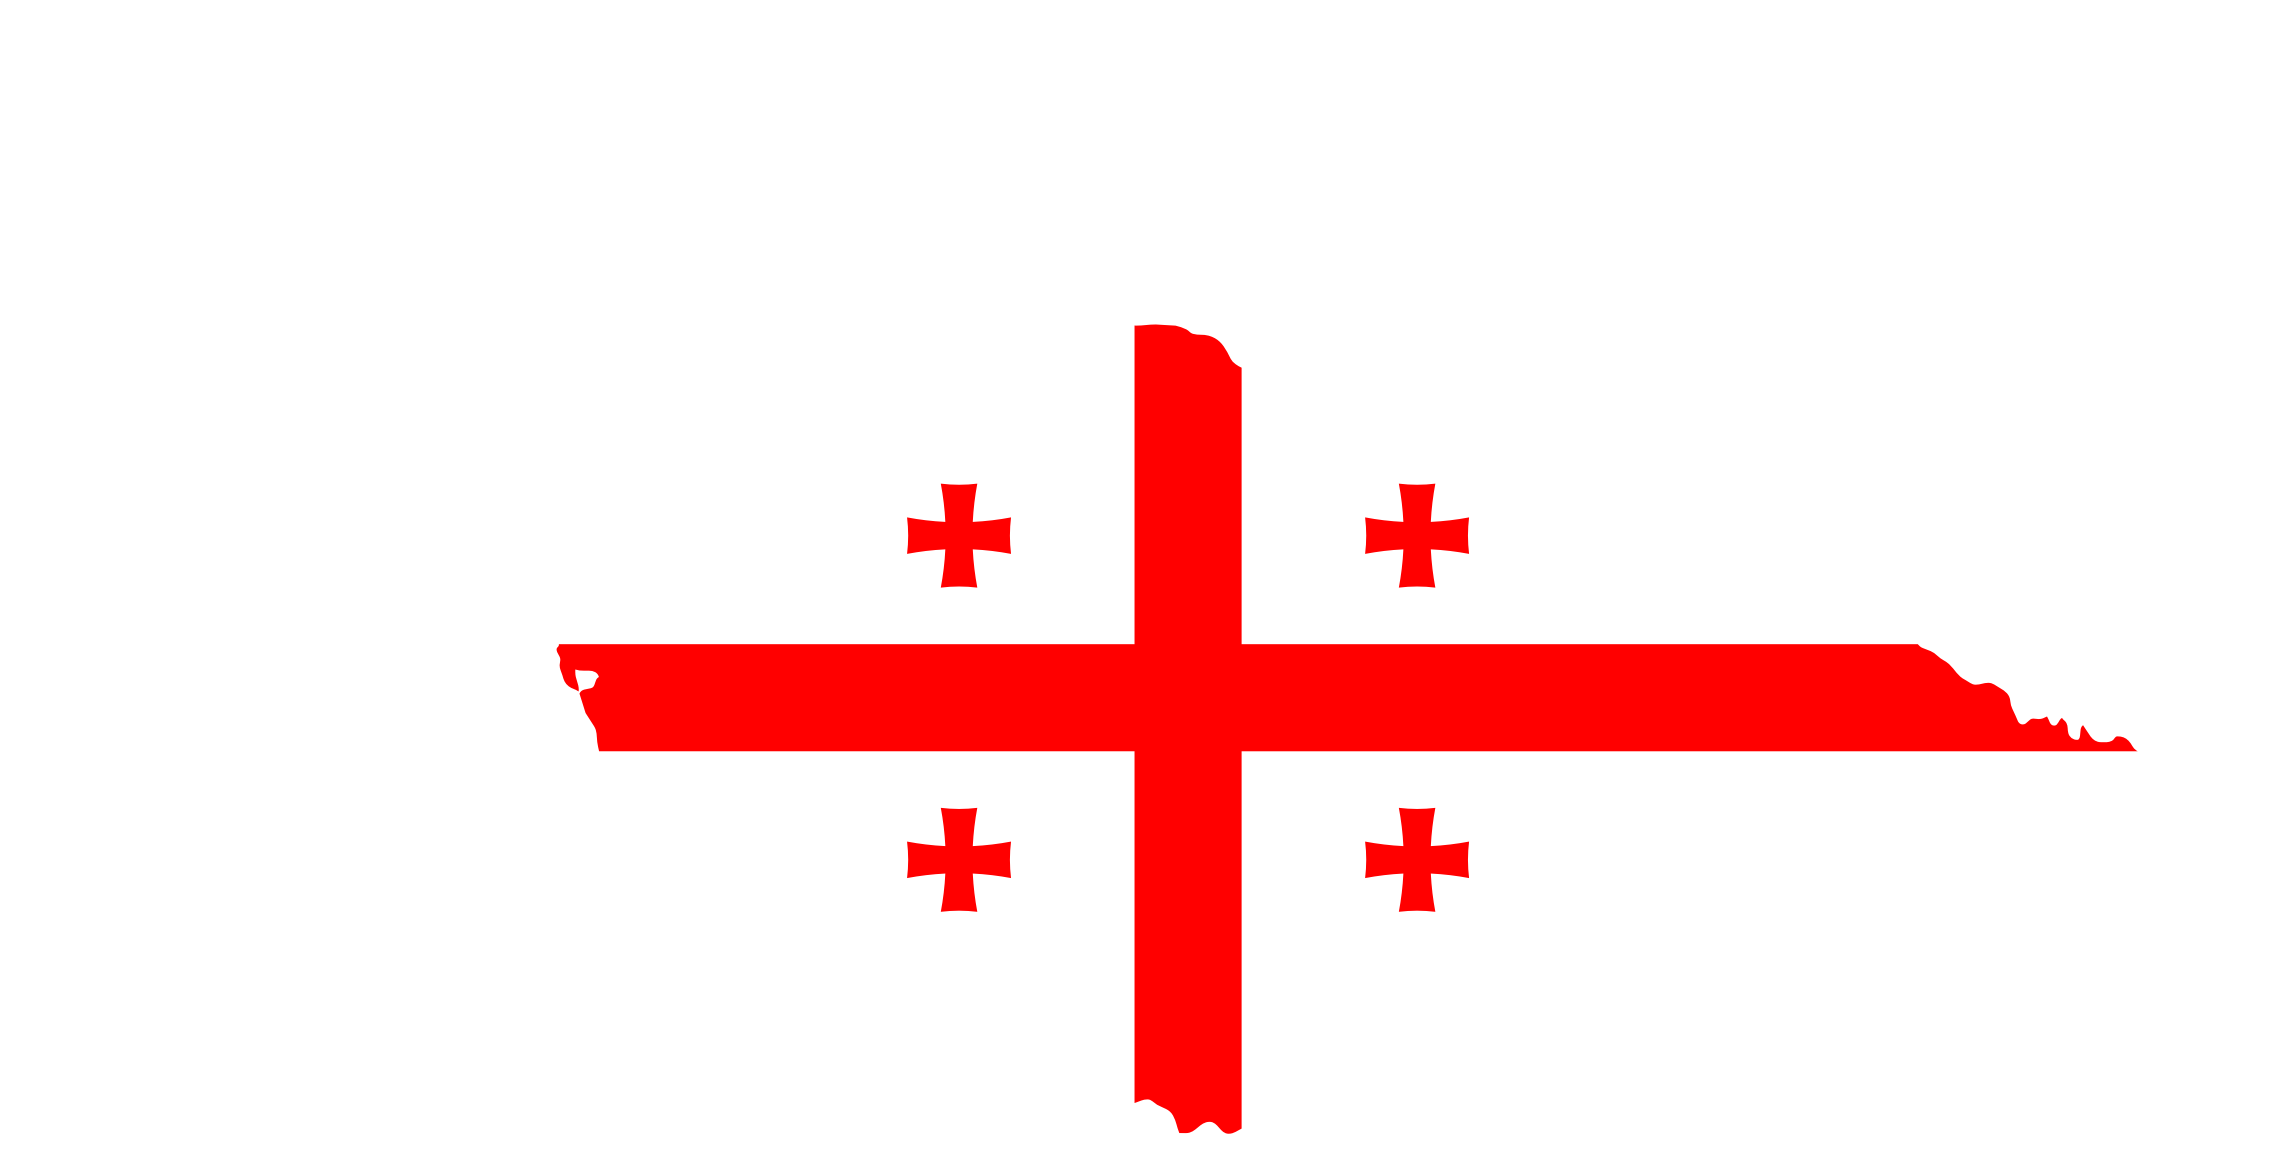 Georgia clipart vector. Map flag icons png